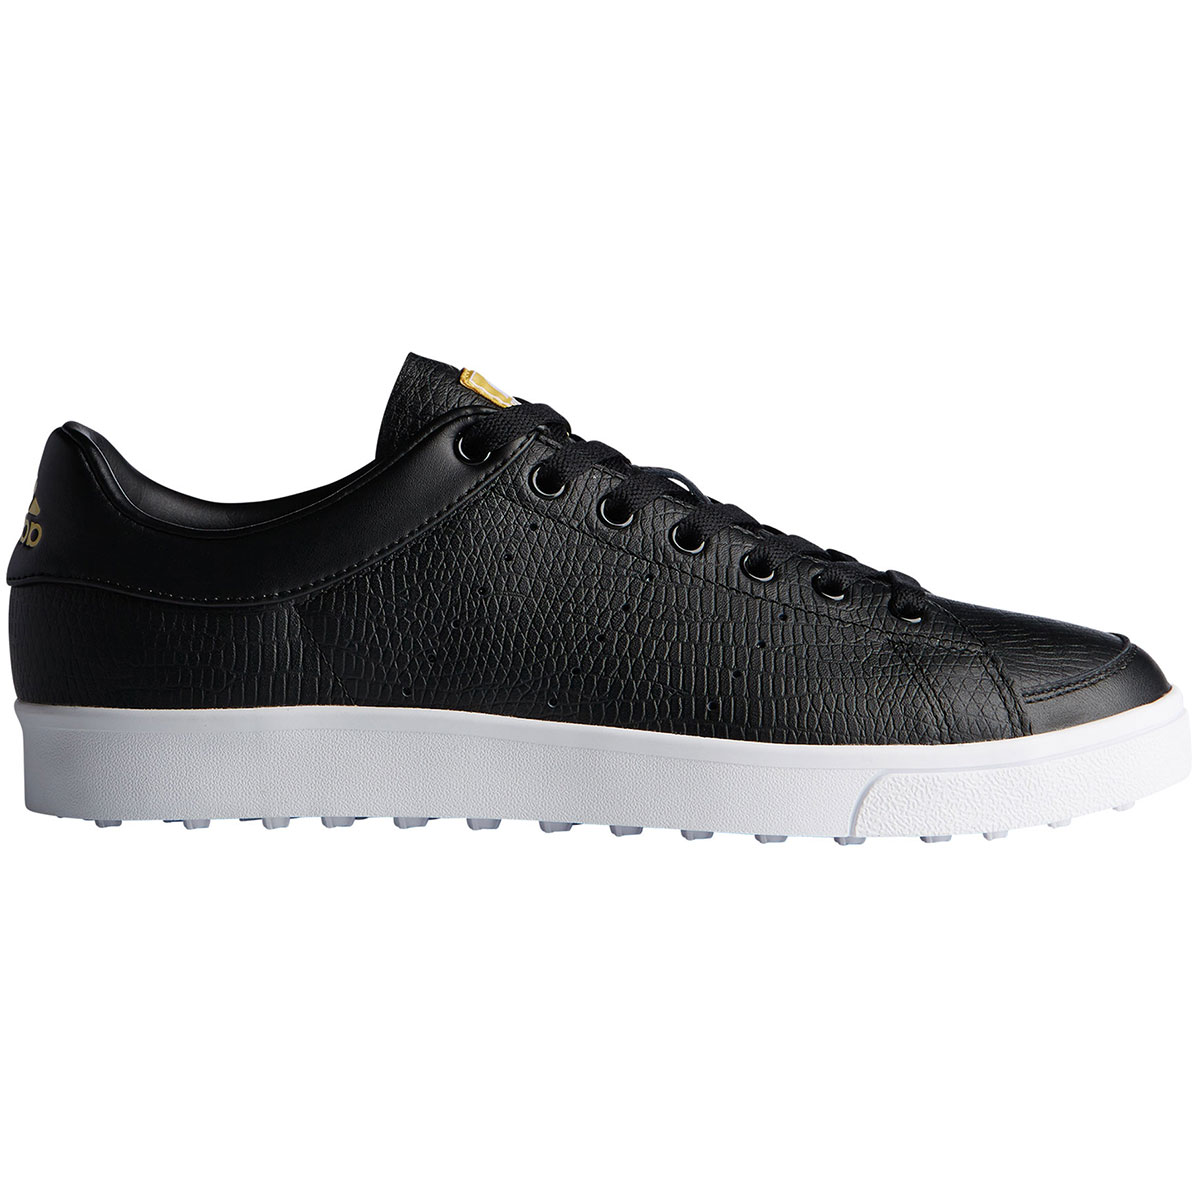 Saco el viento es fuerte fractura  adidas Golf adicross Classic Leather Shoes from american golf